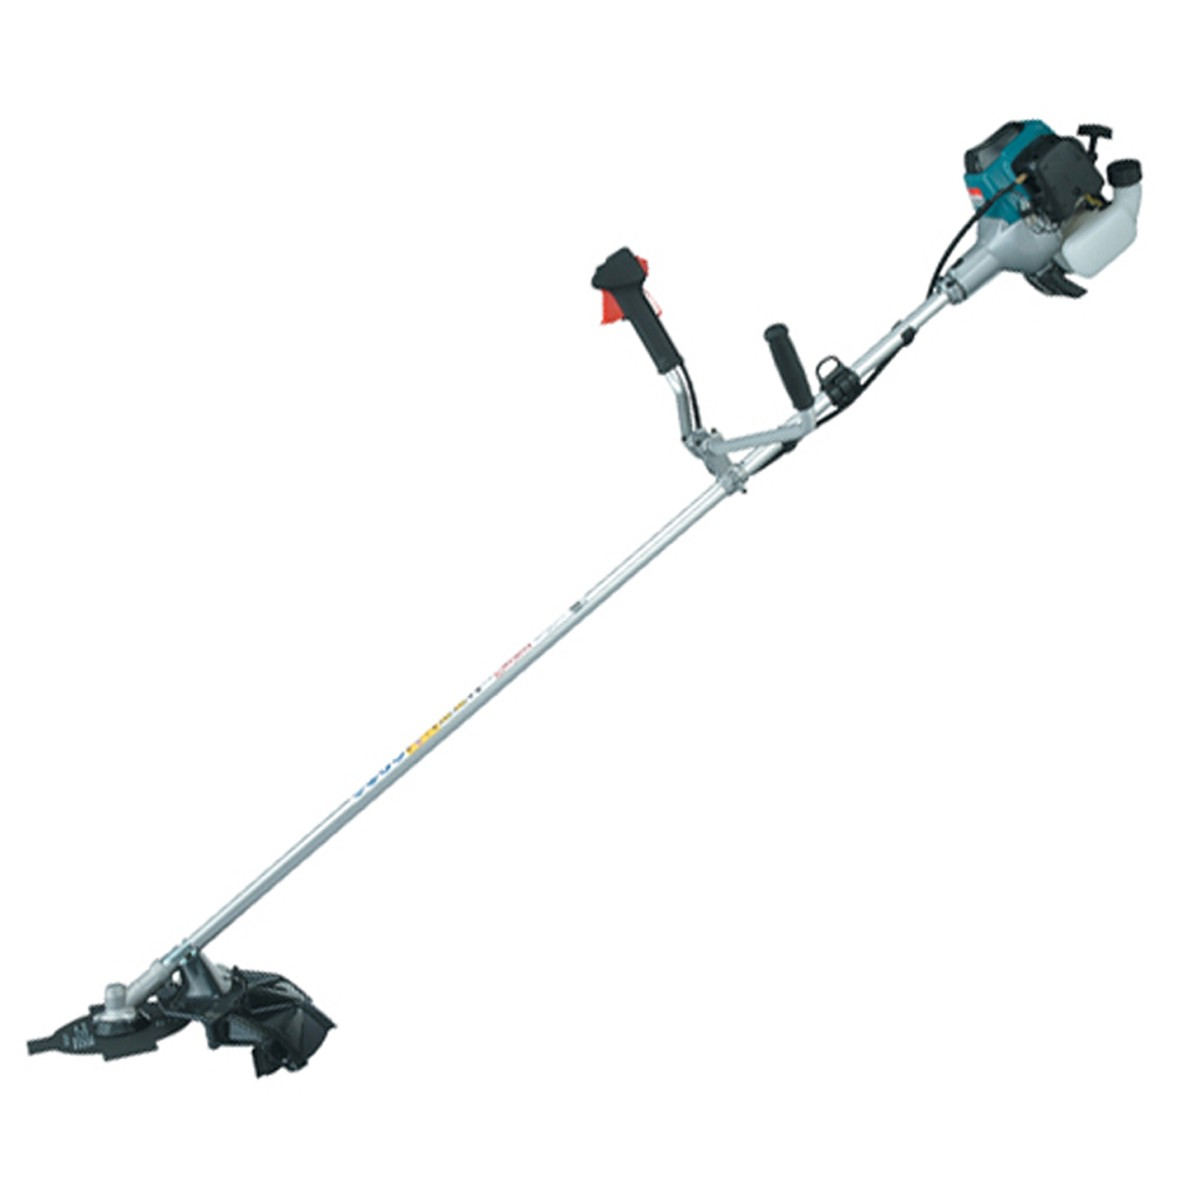 Makita petrol brush cutter 24.5 c.c. rbc2500